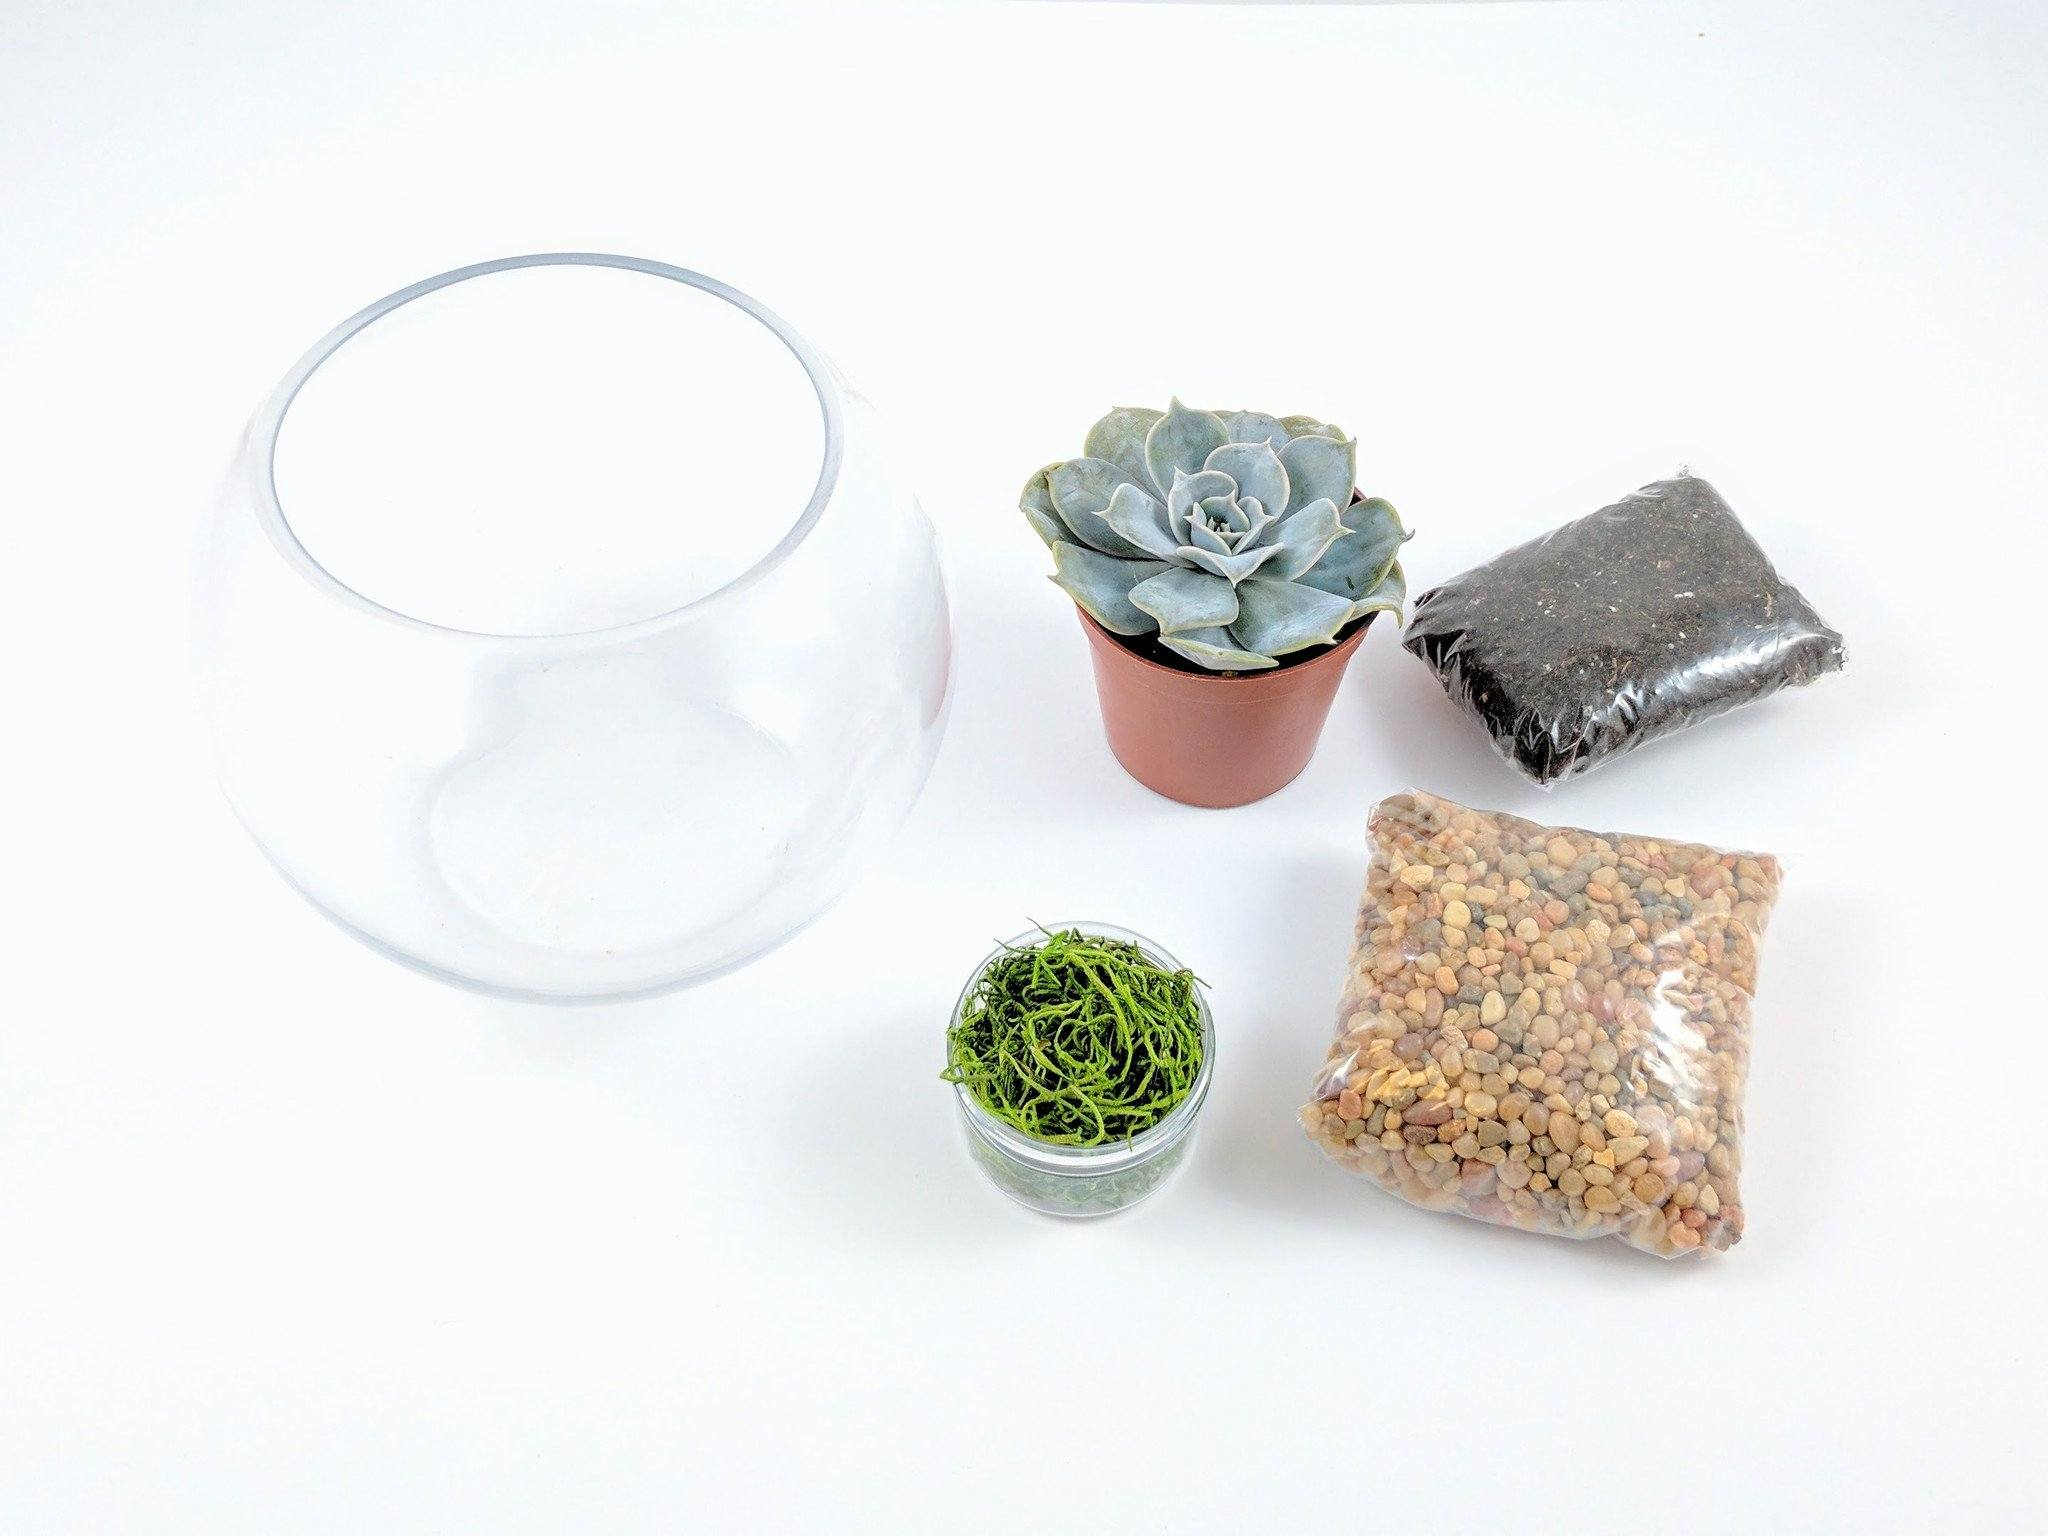 Diy Succulent Terrarium Kit Fishbowl